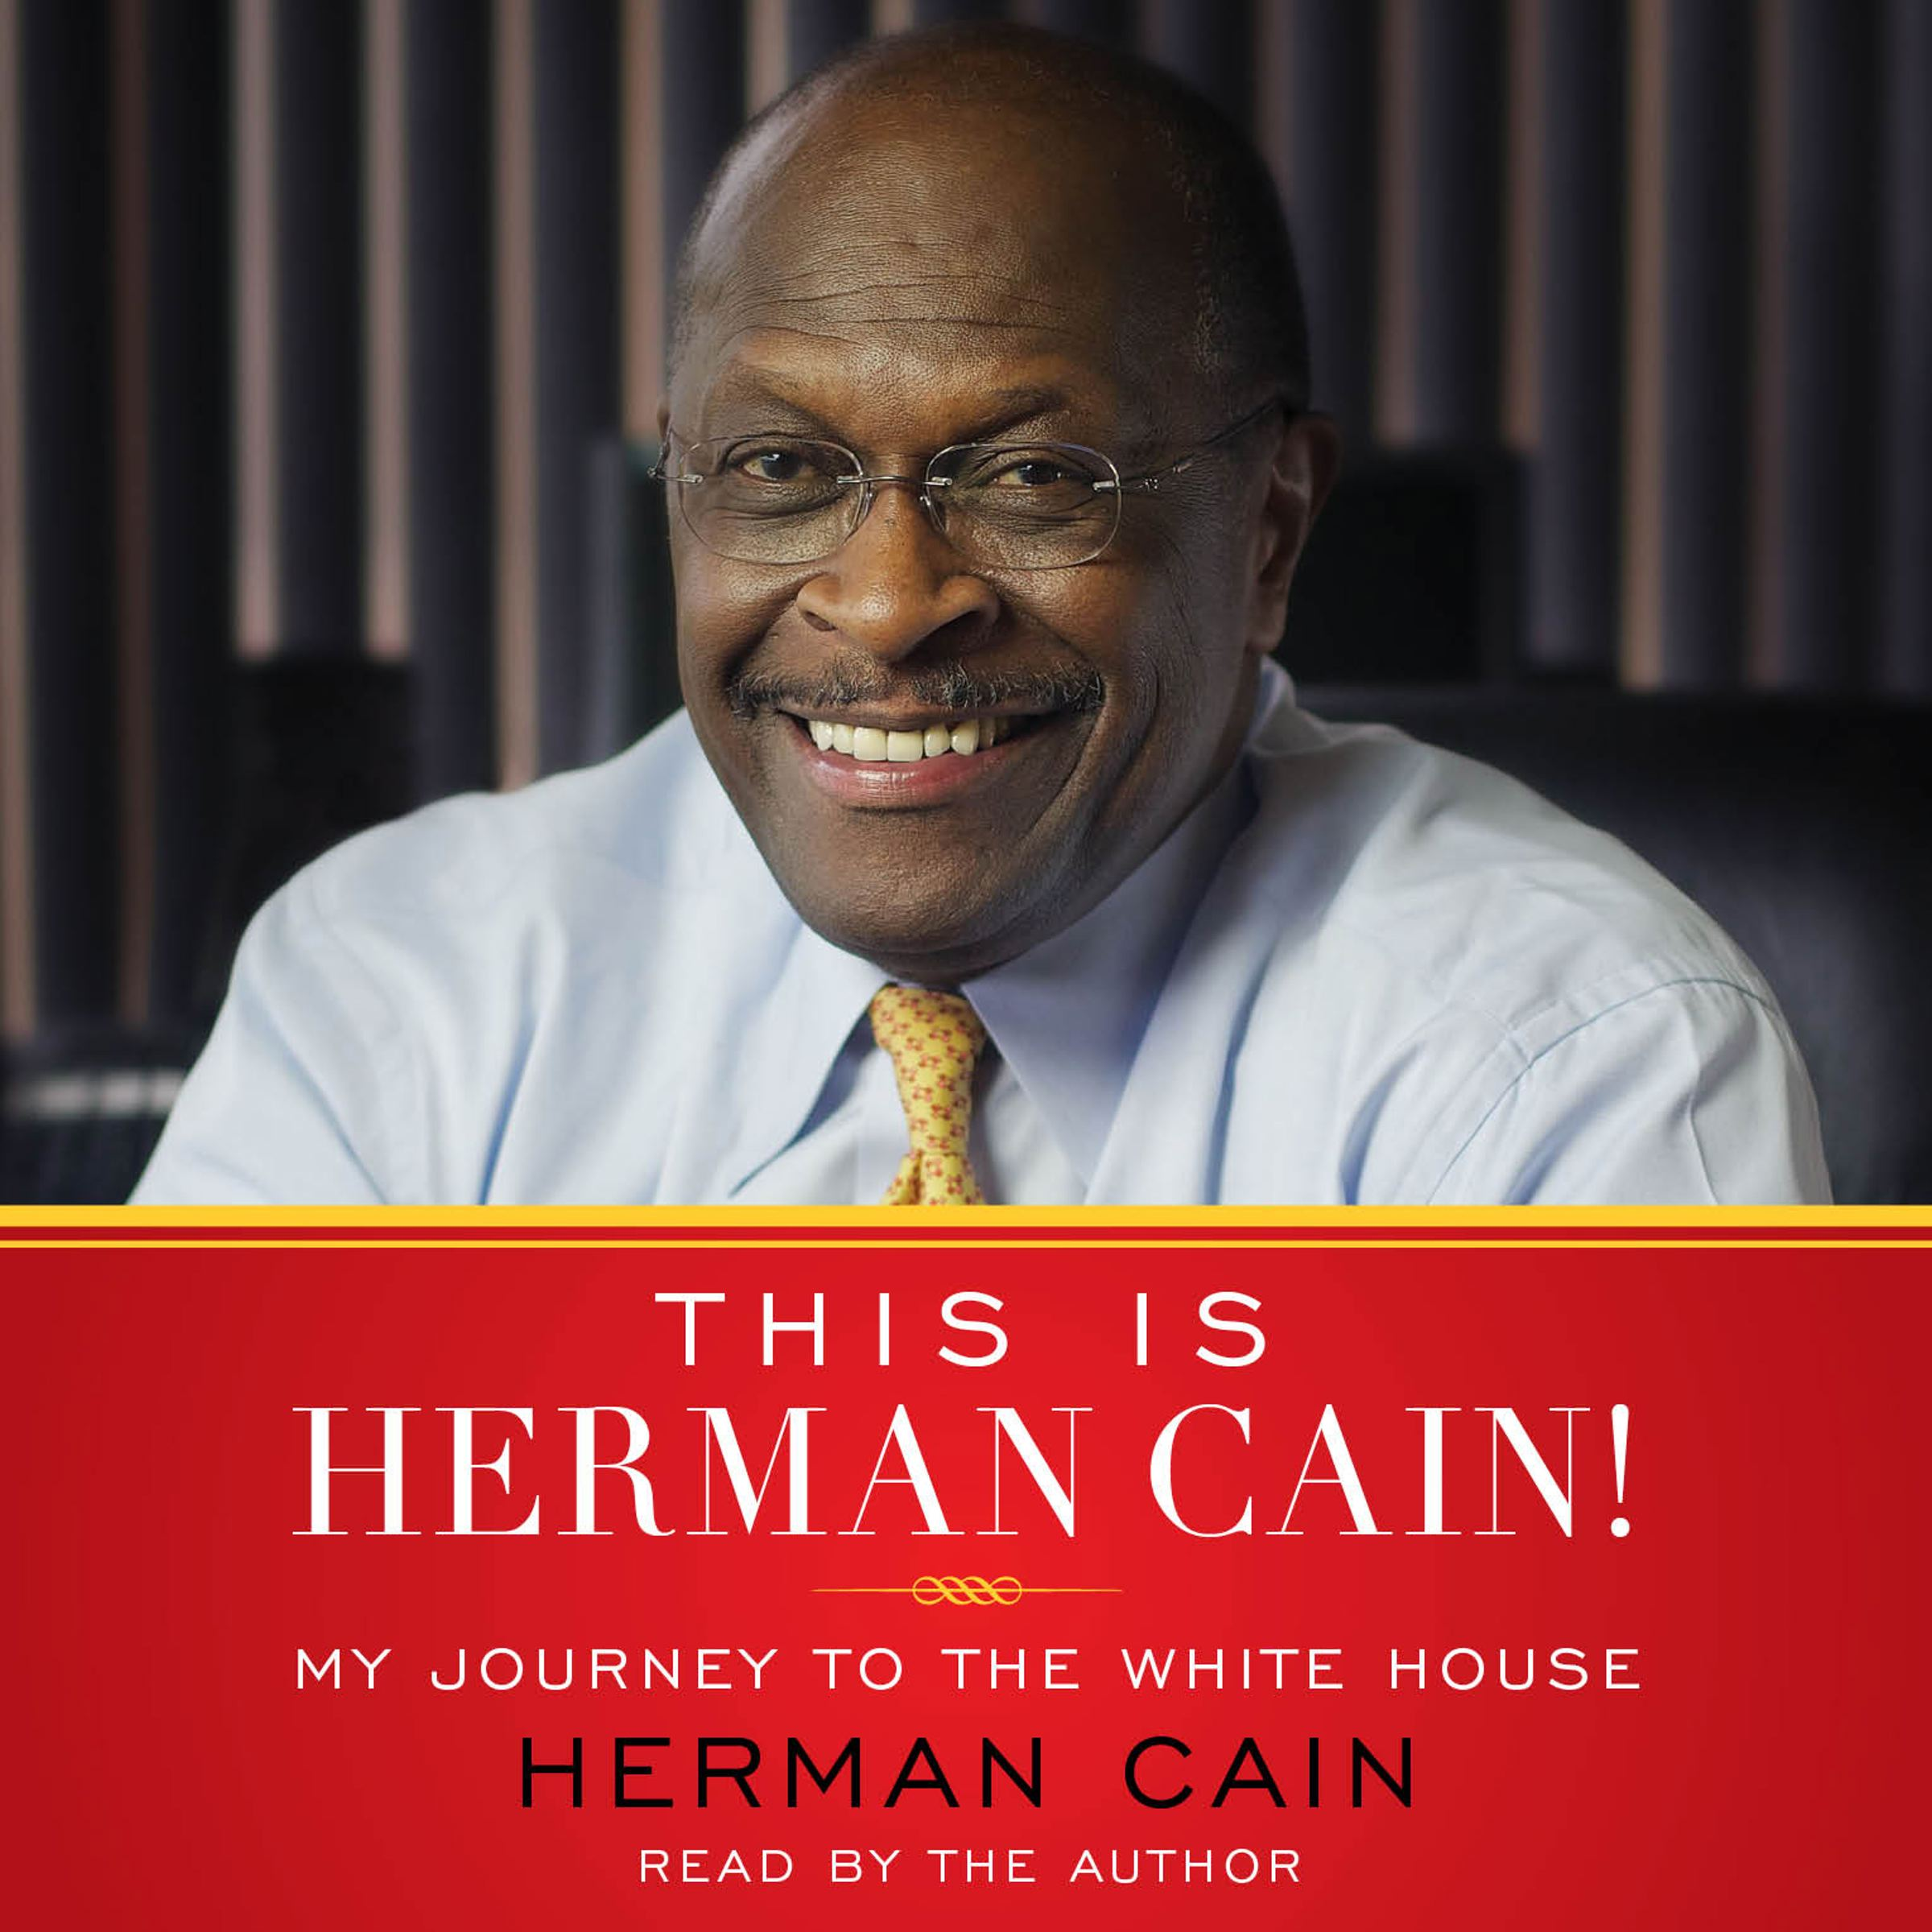 This-is-herman-cain!-9781442347618_hr